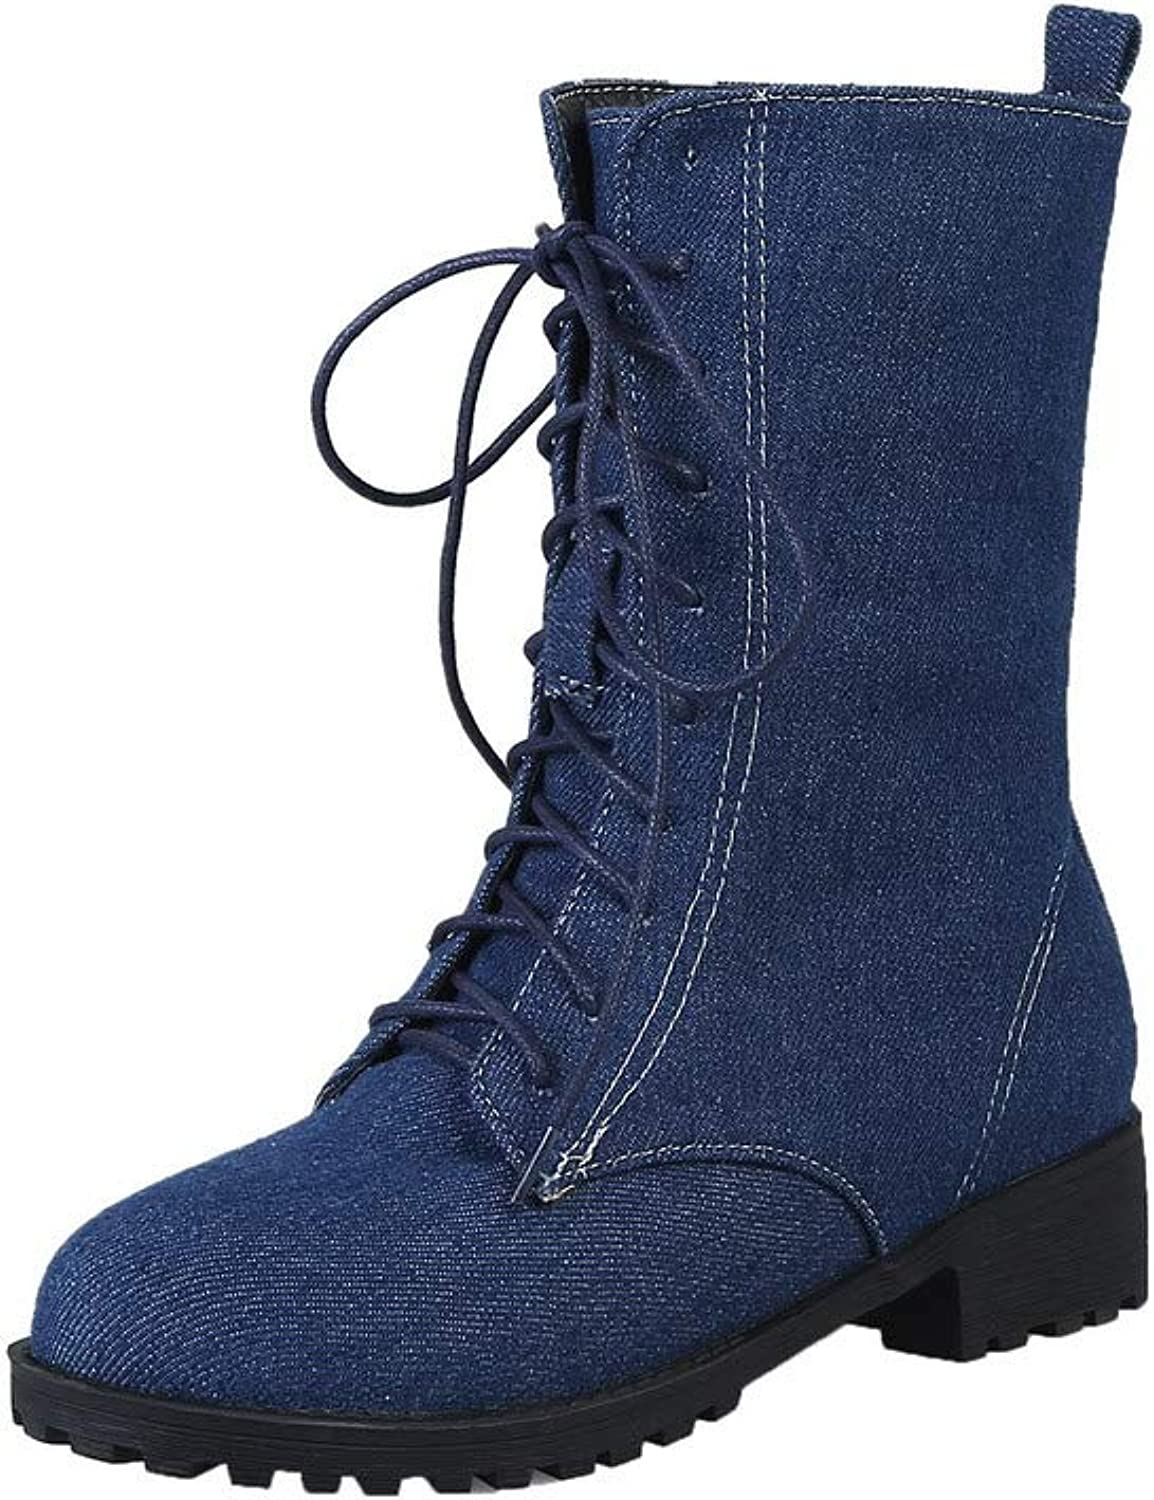 WeiPoot Women's Lace-Up Round-Toe Low-Heels Denim Low-Top Boots, EGHXH112744